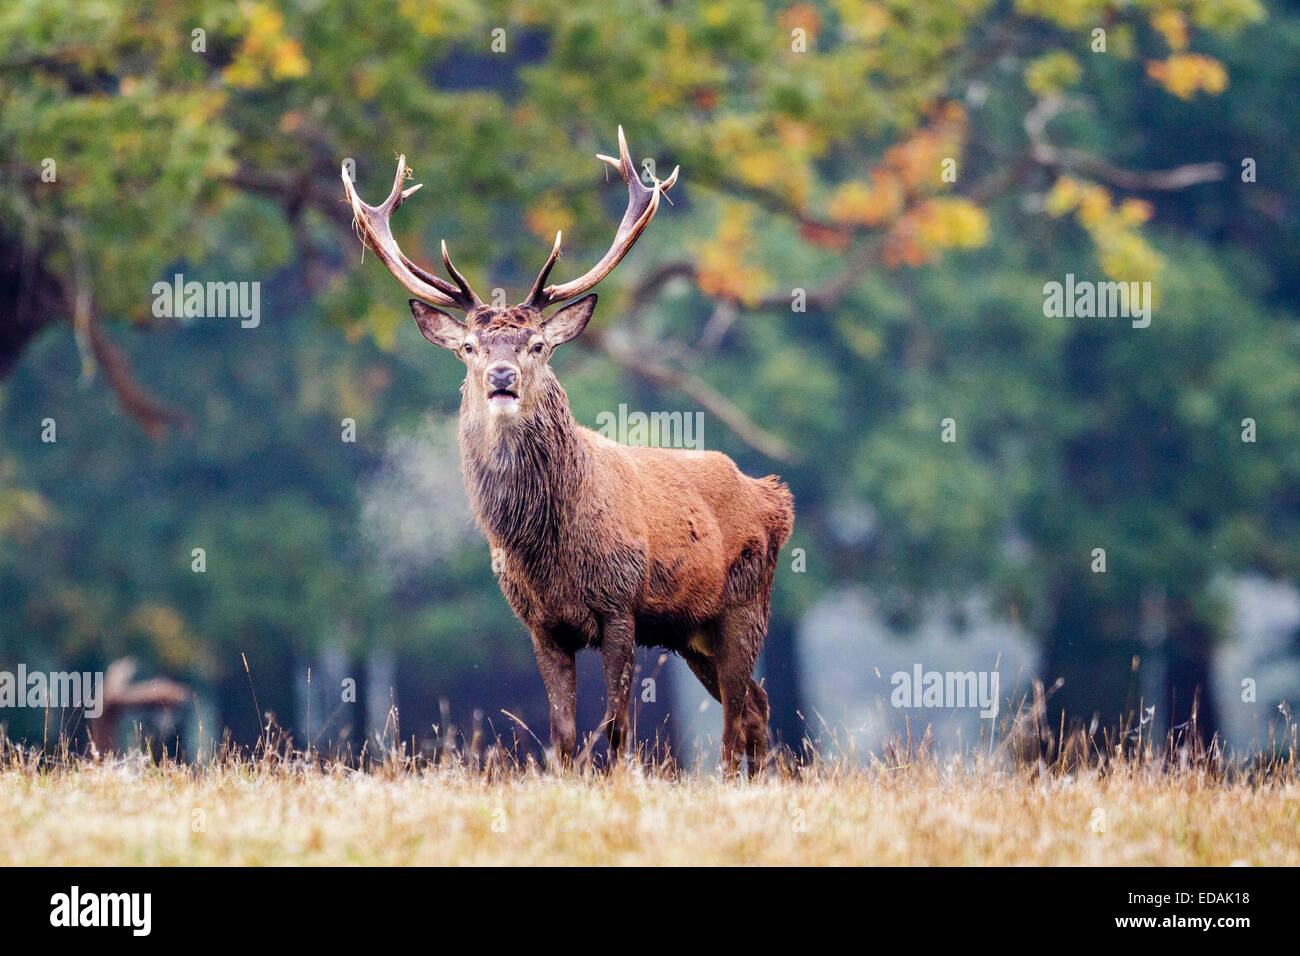 Red deer stag  (cervus elaphus) with hot breath, Windsor Great Park, Berkshire,England,UK - Stock Image